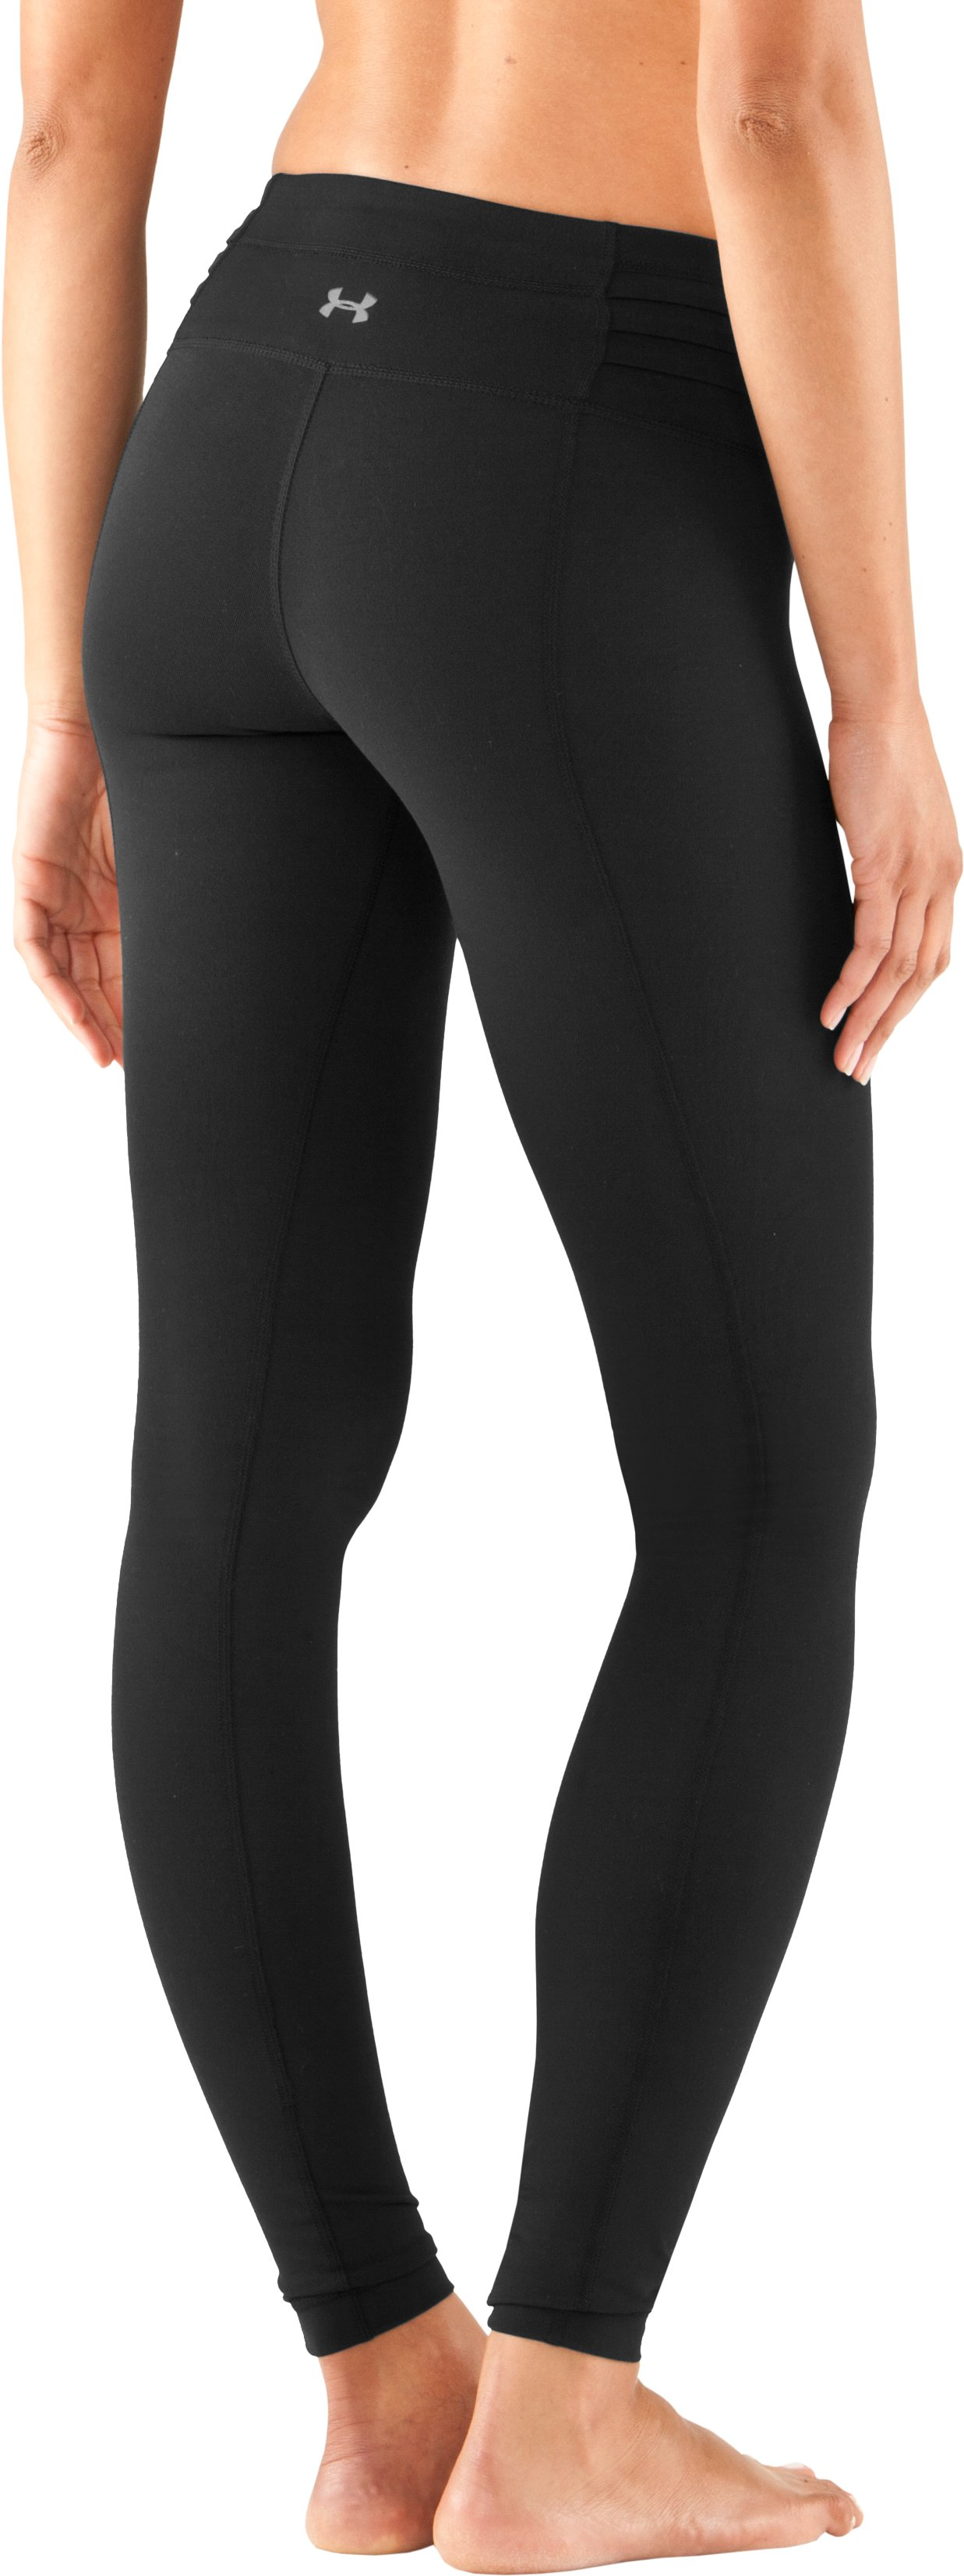 "Women's 30"" UA StudioLux® Quattro Leggings - Short, Black ,"